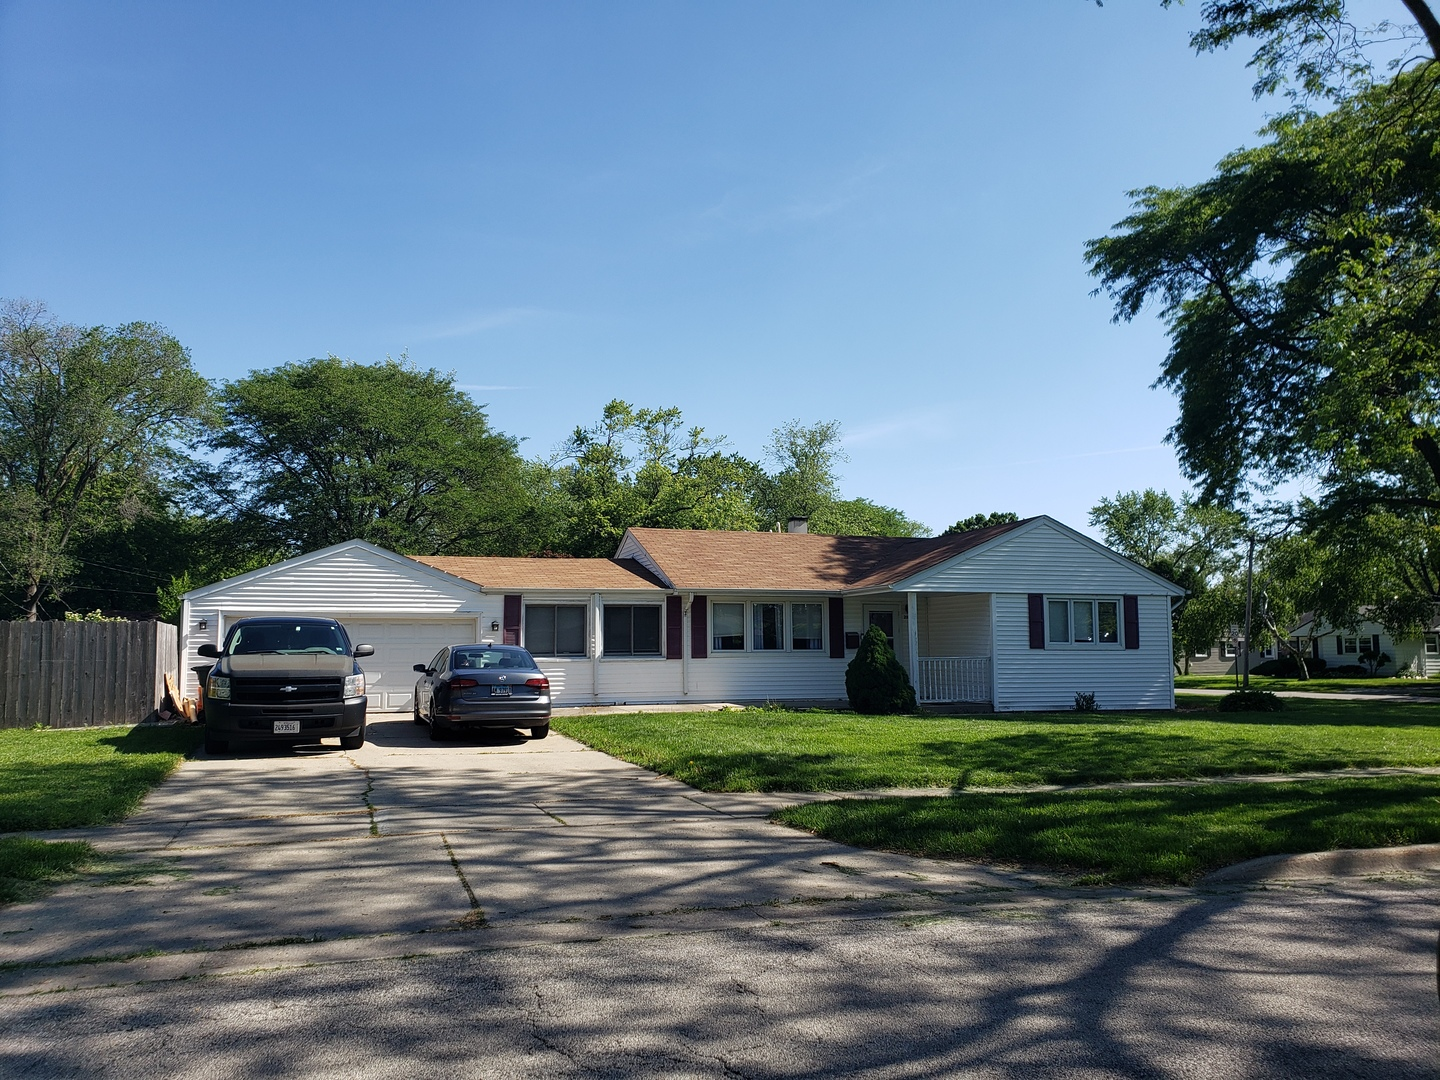 Photo of 2100 Grouse Lane Rolling Meadows Illinois 60008